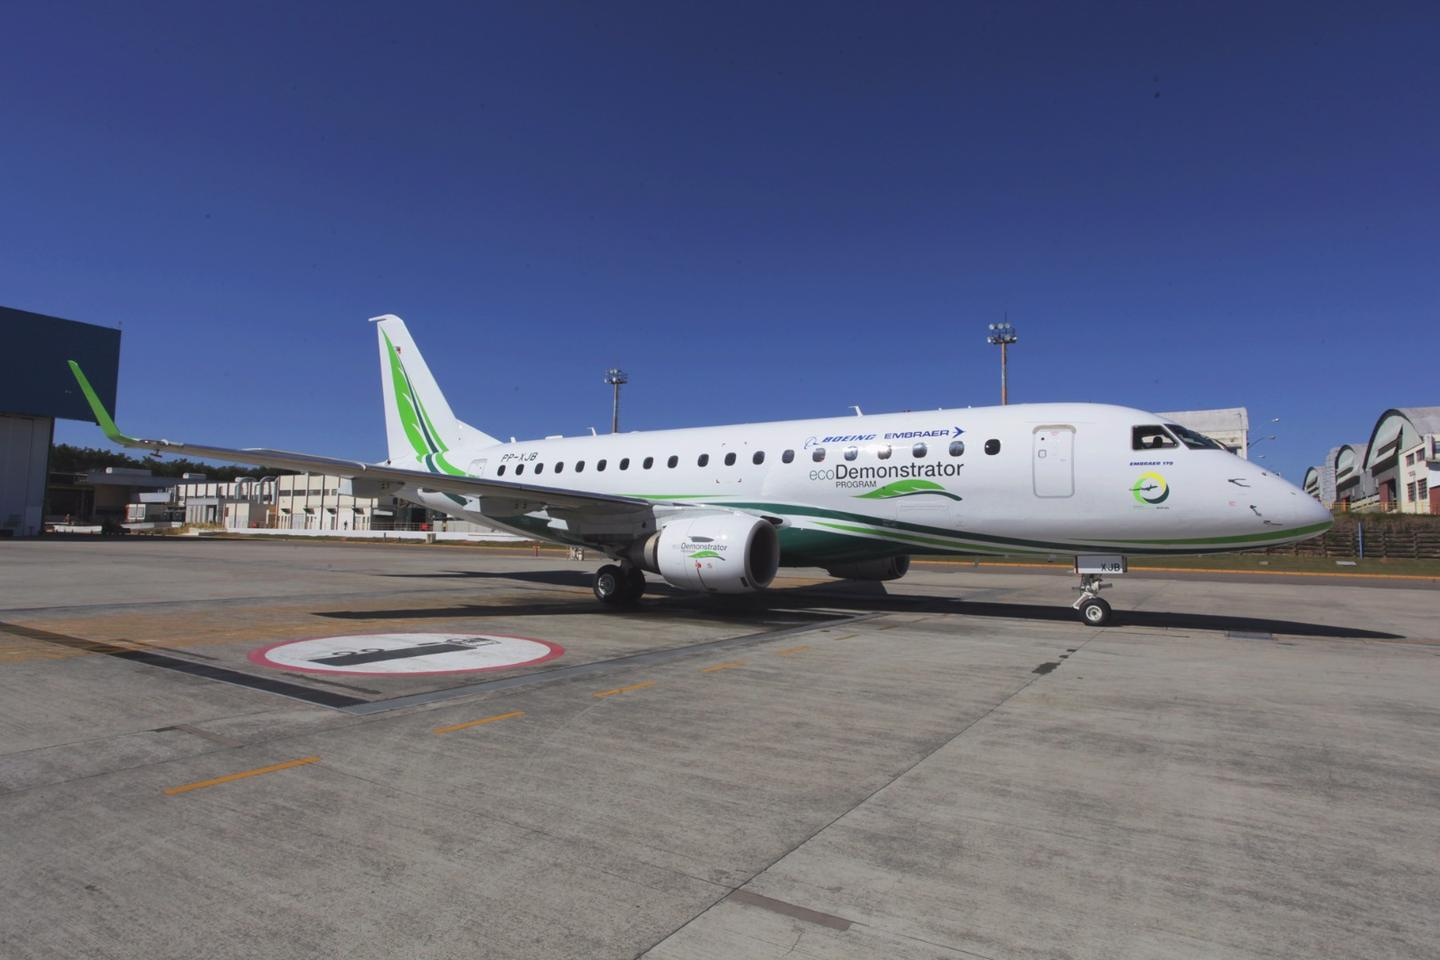 Boeing and Embraer SAunveiled the next phase of the Boeing ecoDemonstrator program today